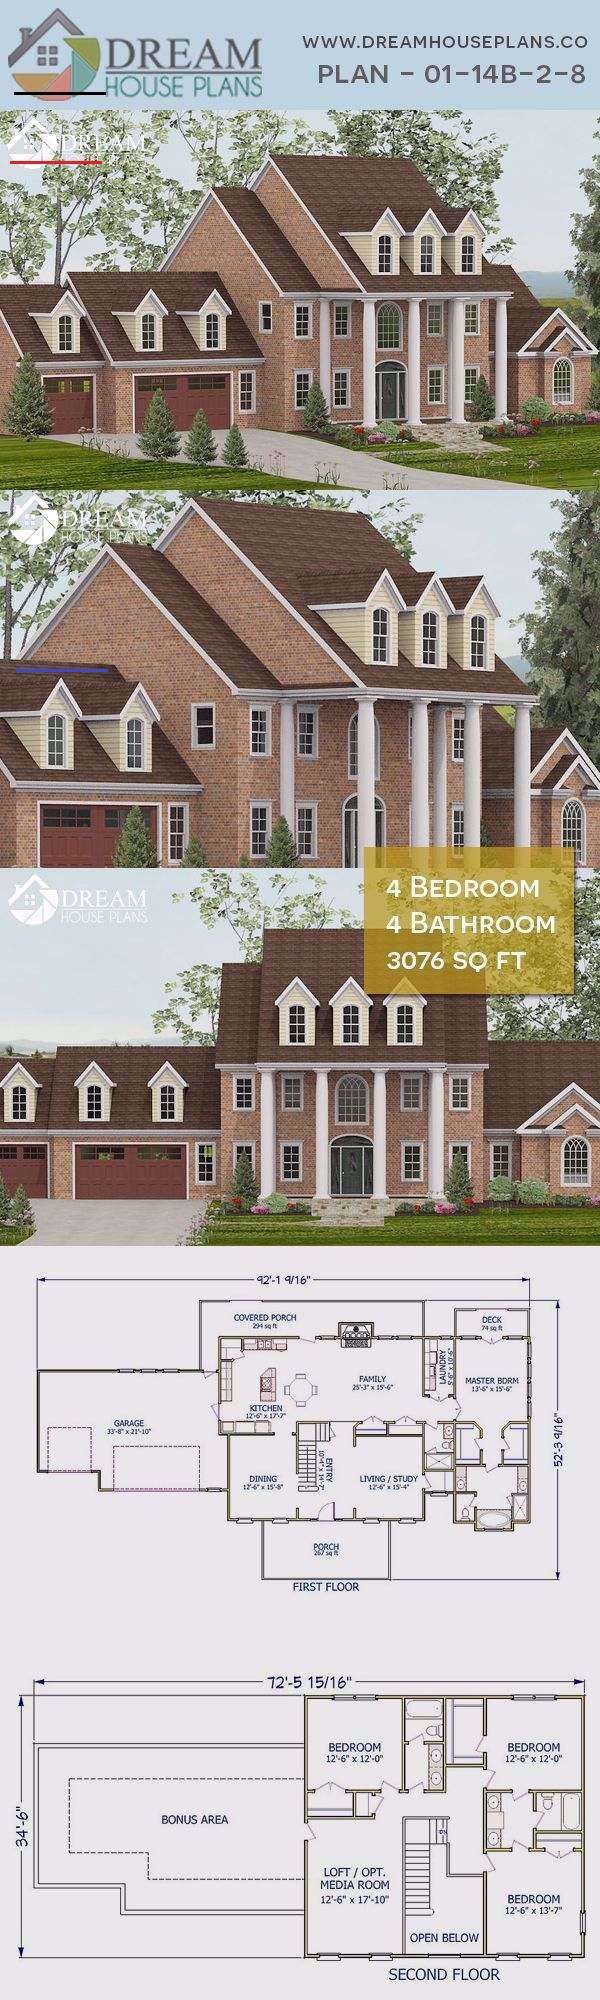 Photo of Dream House Plans: Simple yet popular Craftsman 4 Bedroom, 3076 Sq. Ft. house pl…